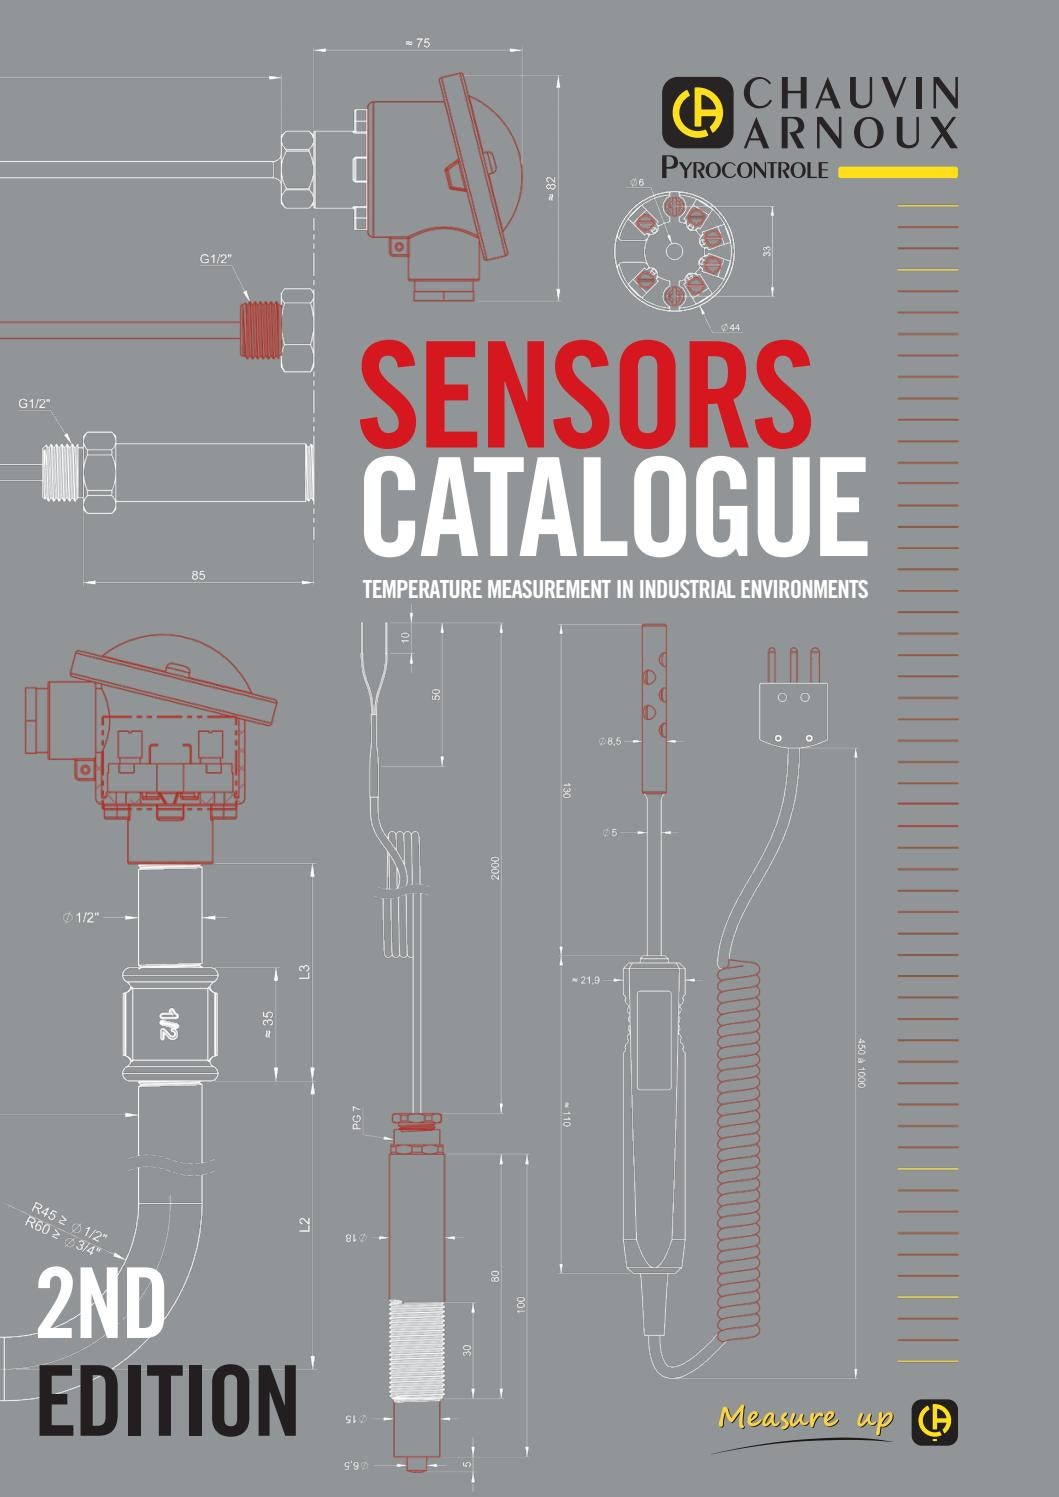 Temperature Sensors By Pyrocontrole 2nd Edition By Chauvin Arnoux Group Issuu